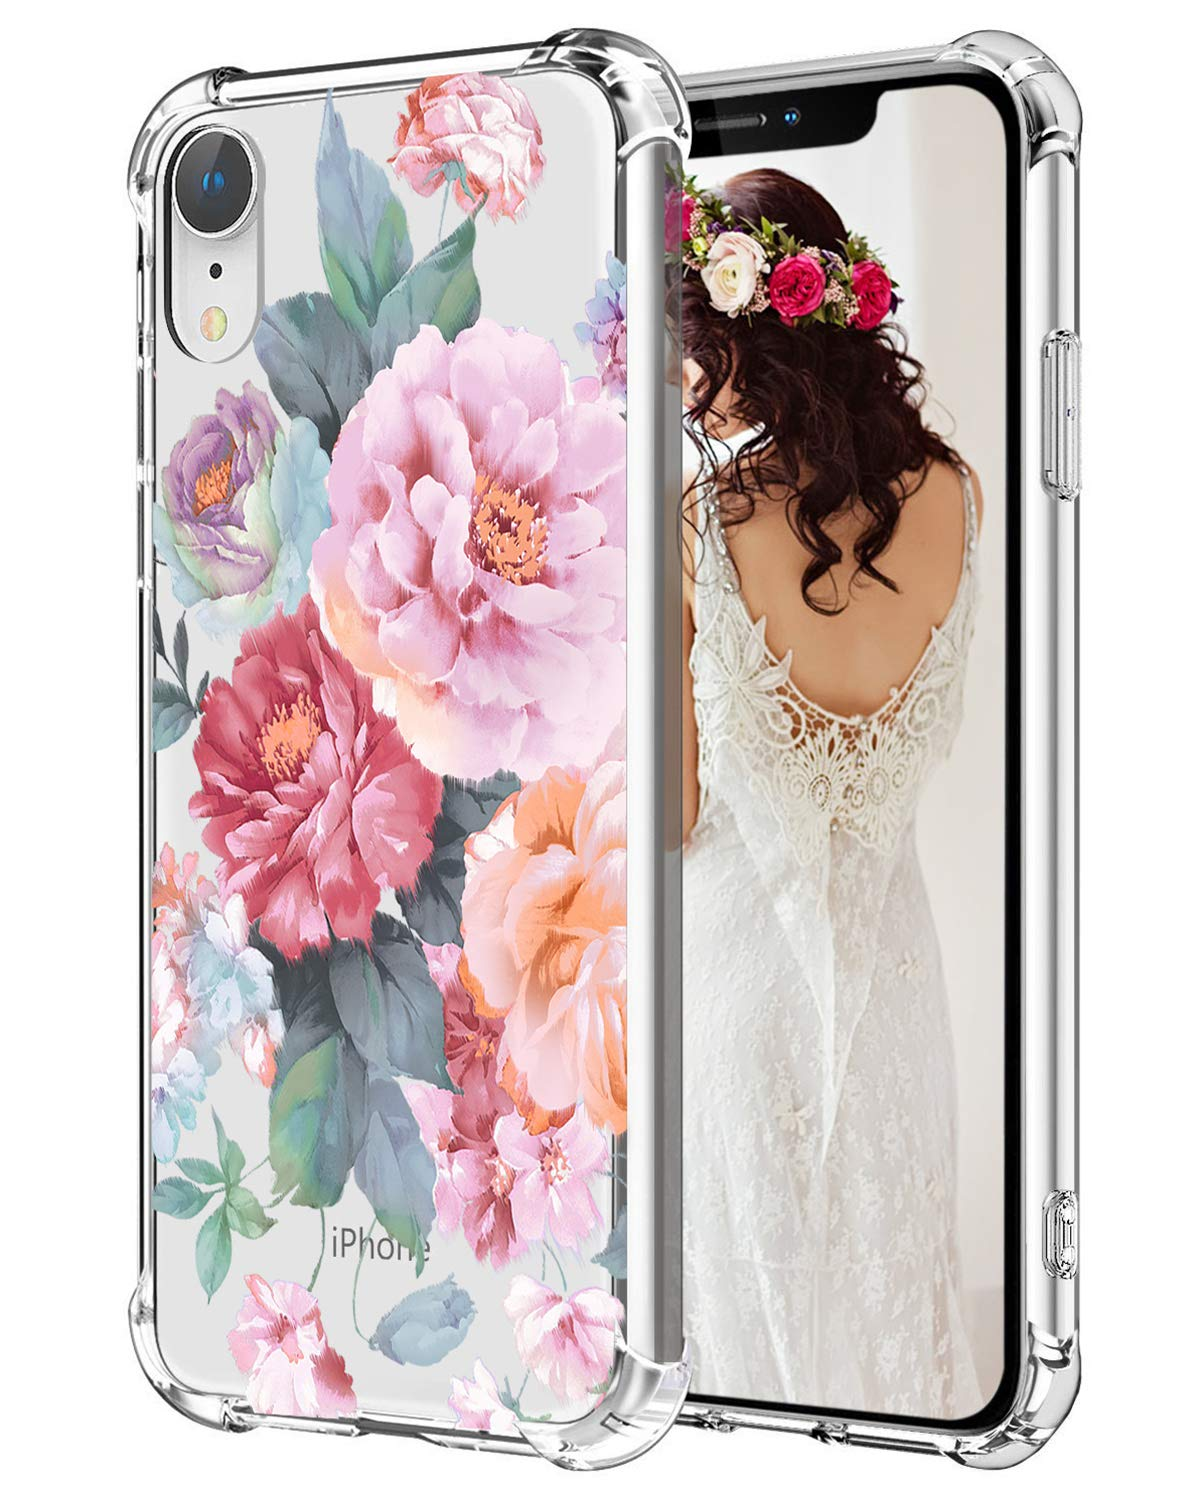 """Hepix iPhone XR Clear Case Penoy Flowers Floral Xr Cases, Clear Protective TPU Xr Phone Cover with Reinforced Bumpers, Anti-Scratch Shock Absorbing Case for iPhone XR (2018) 6.1"""""""